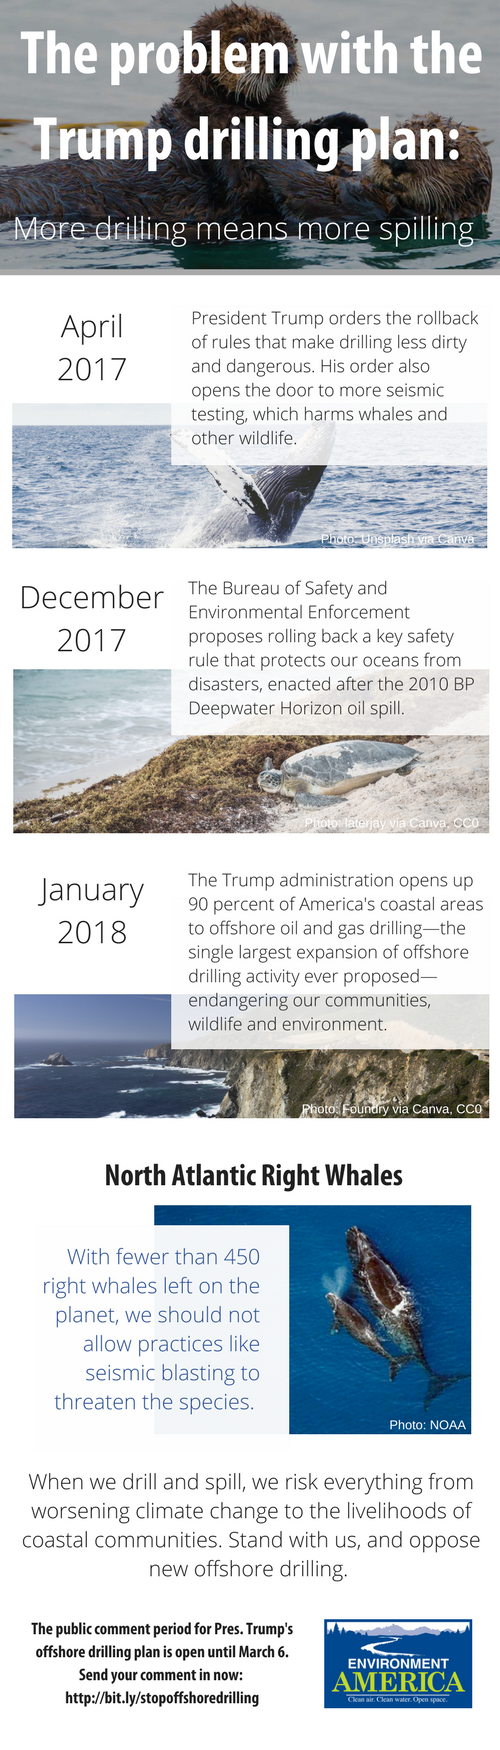 The Trump administration has taken many steps to increase offshore drilling since Pres. Trump took office. See our graphic for an explanation, and a way to take action to stop dirty and dangerous drilling.